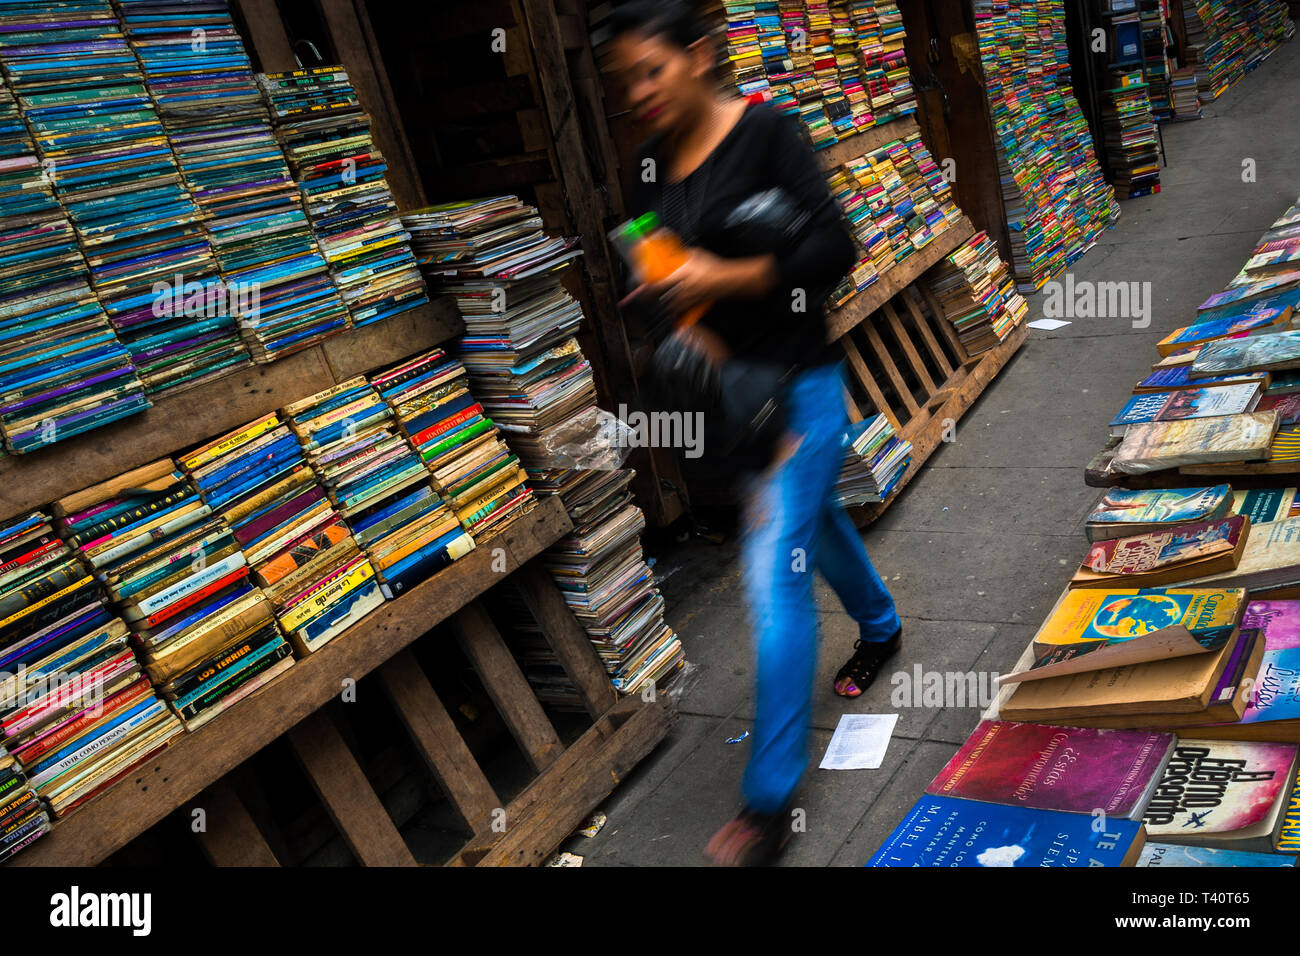 A Salvadoran woman walks along hundreds of used books stacked in shelves on the street in a secondhand bookshop in San Salvador, El Salvador. - Stock Image